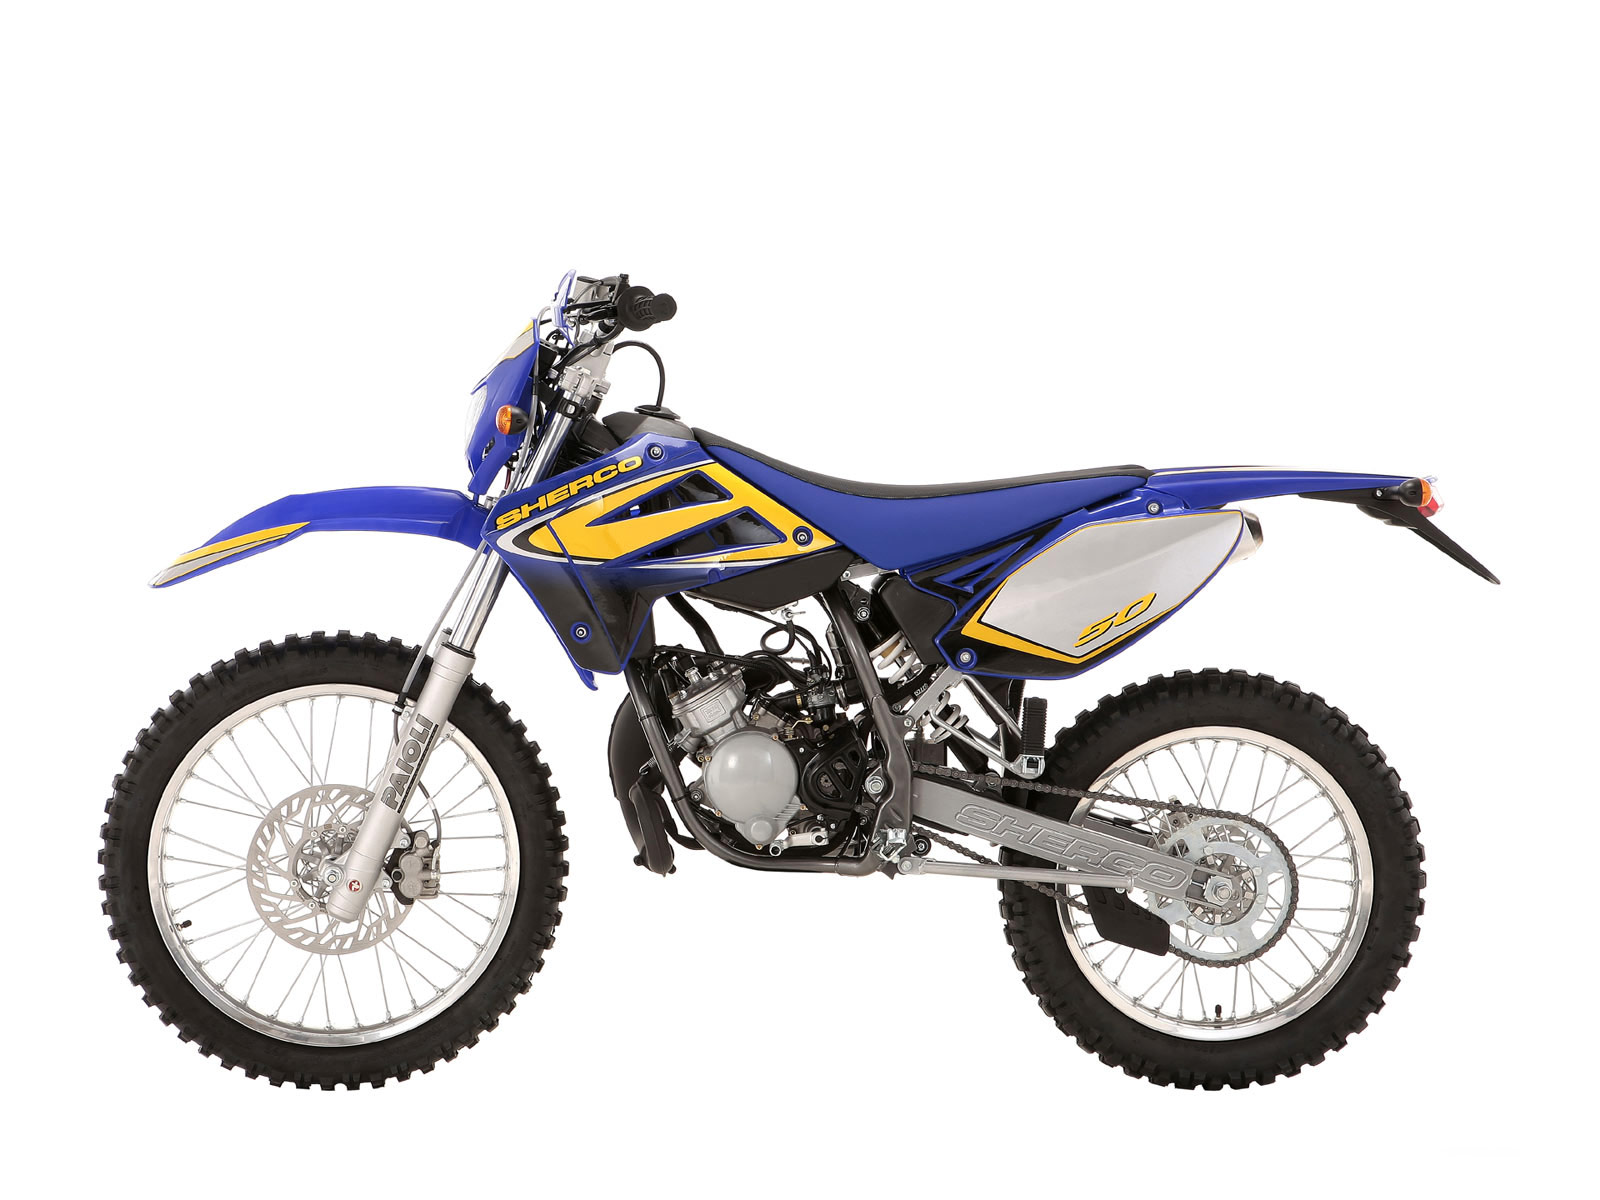 Sherco 125cc Enduro Shark Replica 2007 images #124655